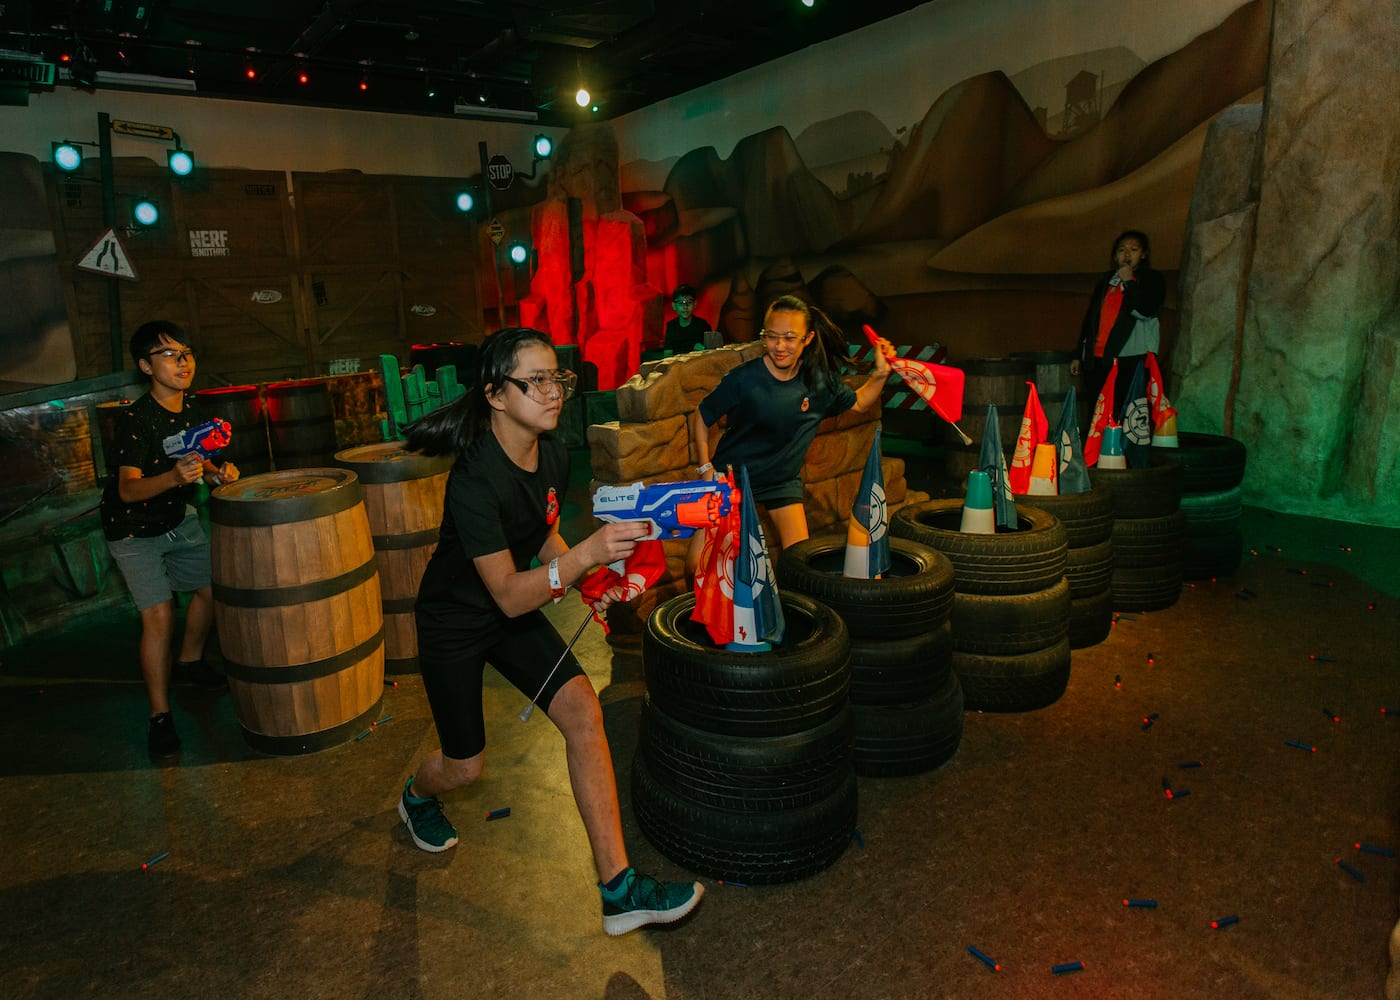 A day of blastin' fun: NERF's adrenaline pumped interschool competition